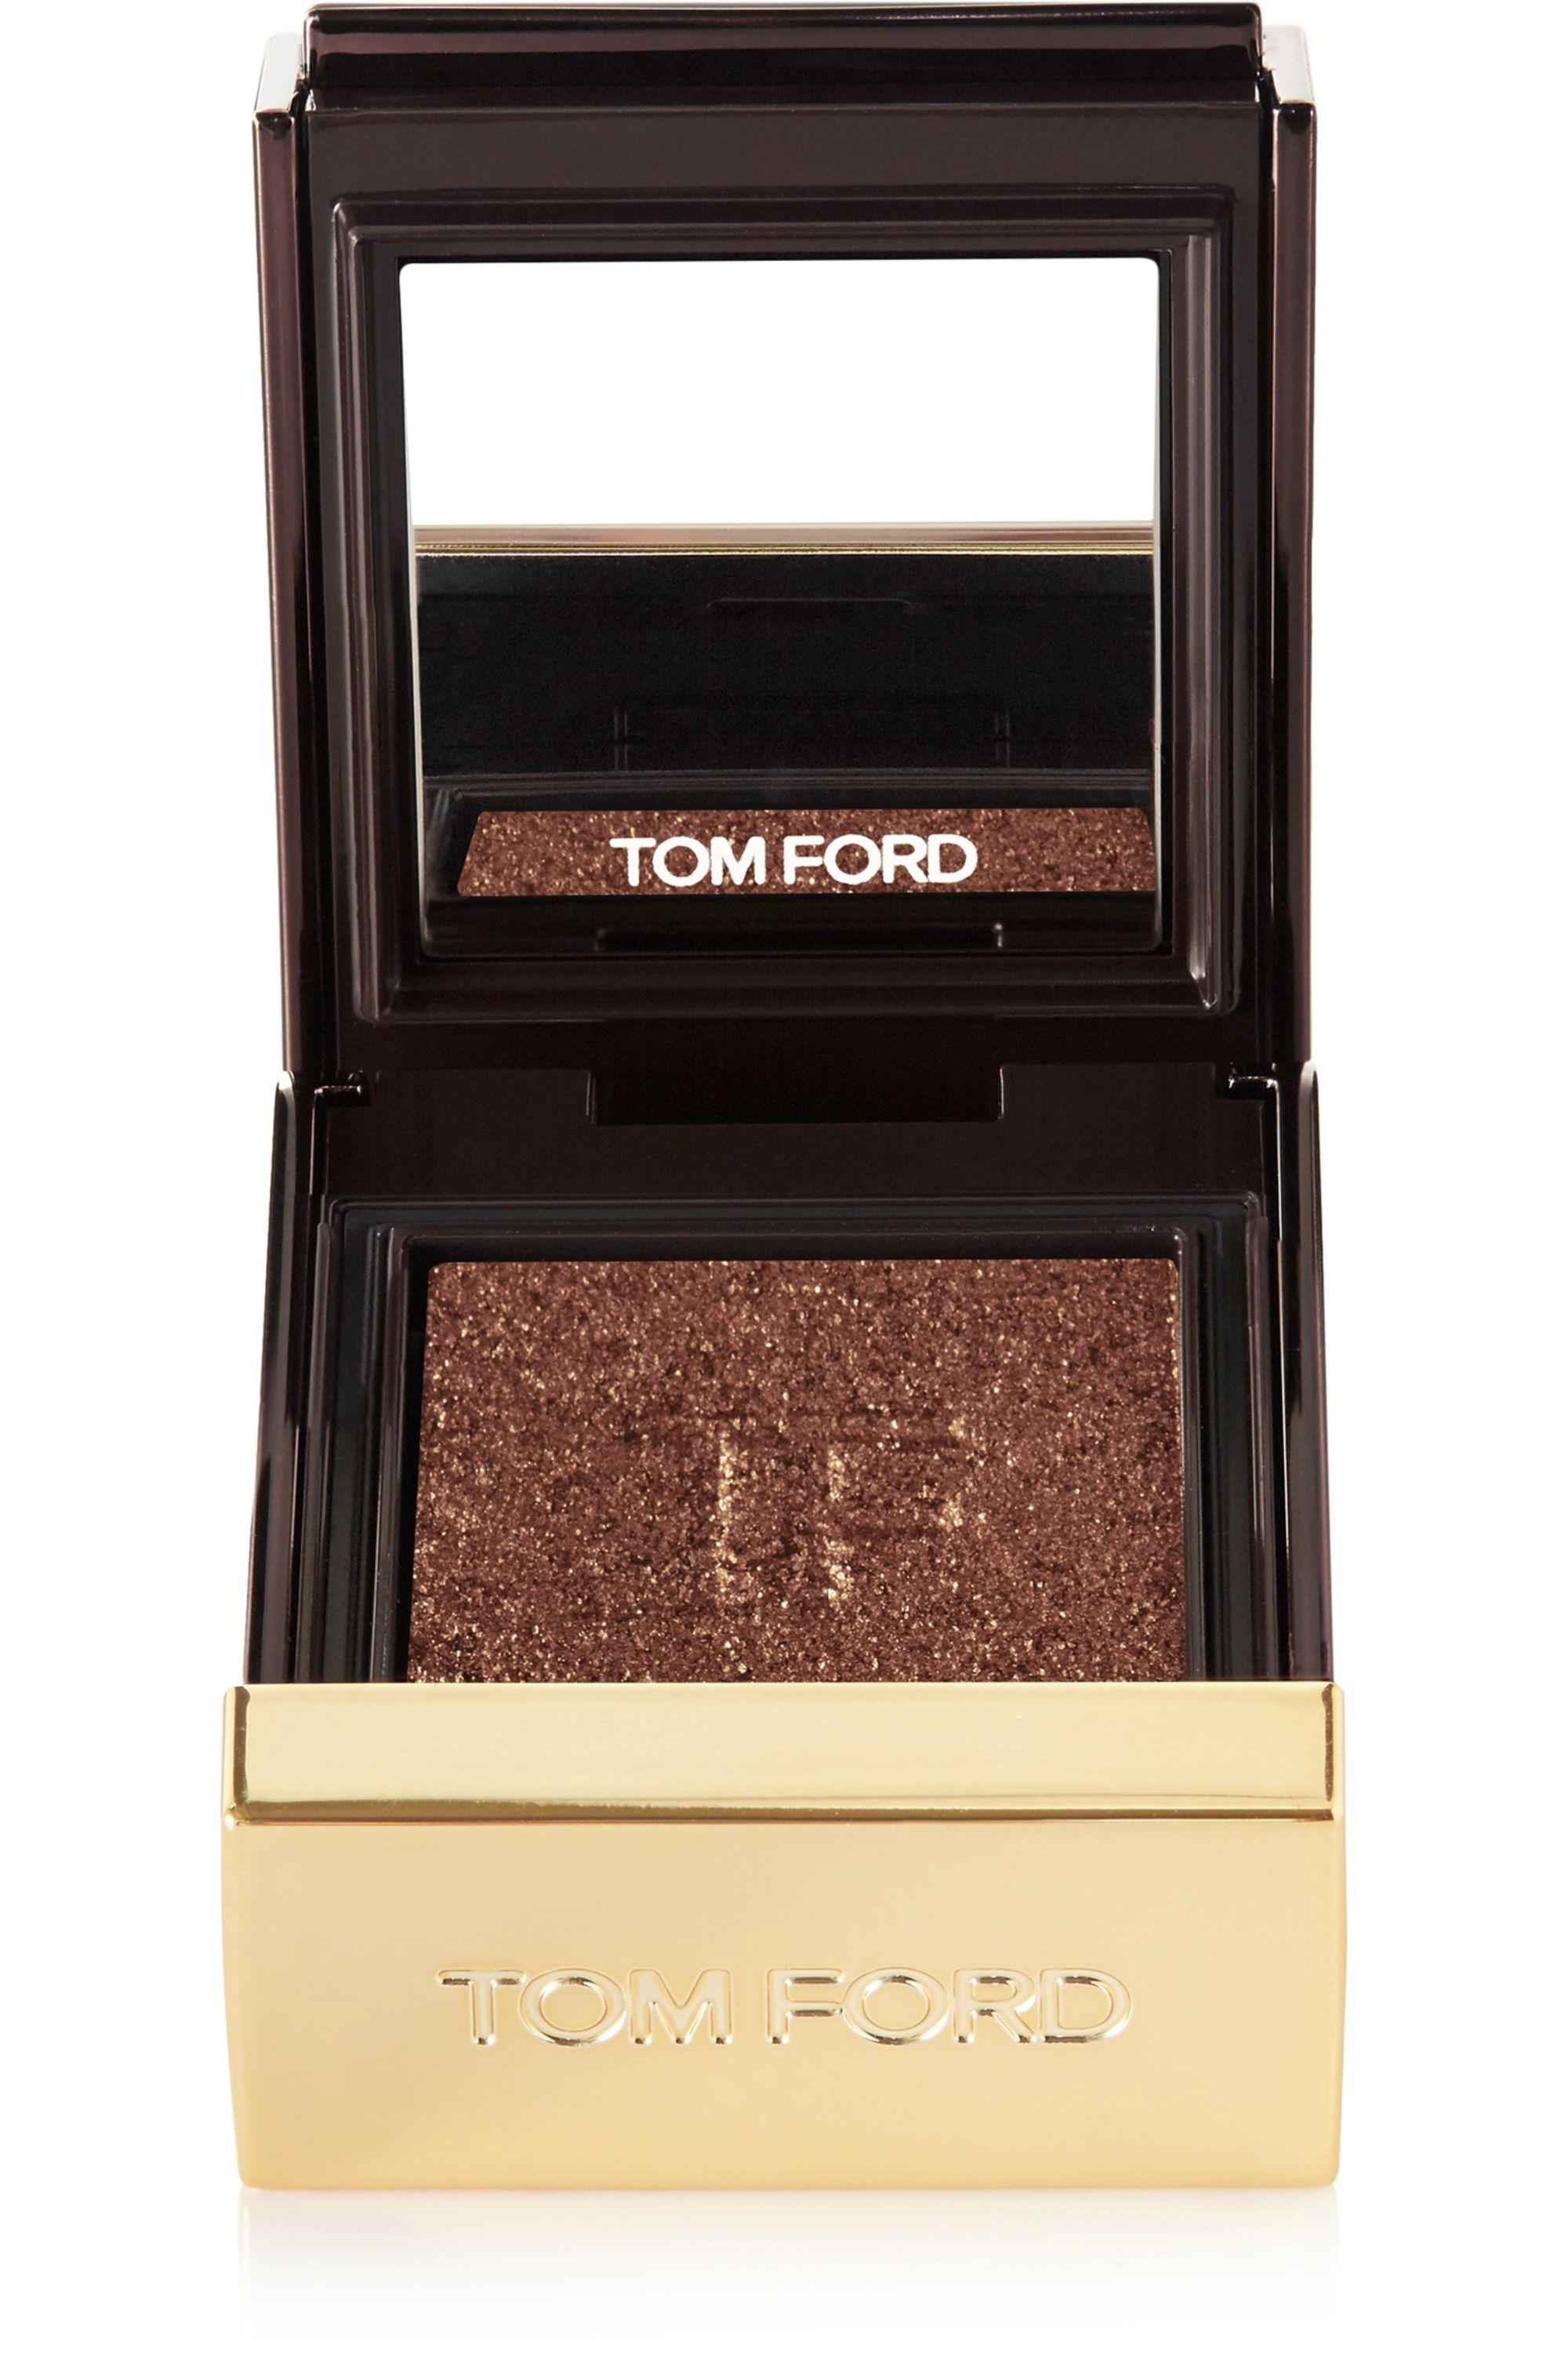 TOM FORD BEAUTY Private Shadow - Fire Sign 03